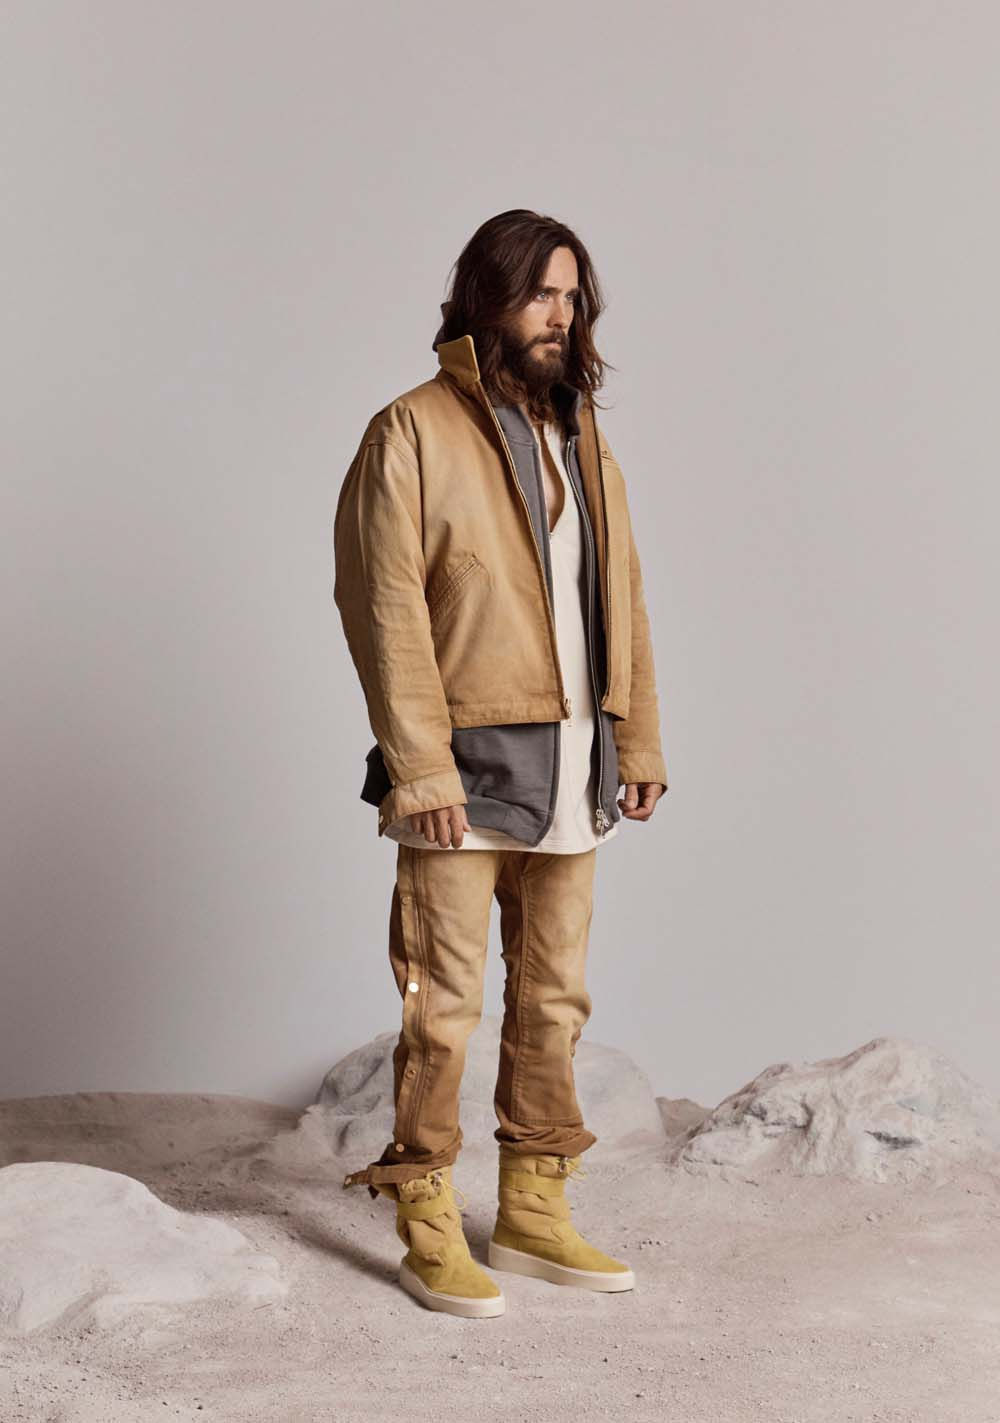 https_%2F%2Fhypebeast.com%2Fimage%2F2018%2F09%2Ffear-of-god-6-sixth-collection-jared-leto-nike-36.jpg